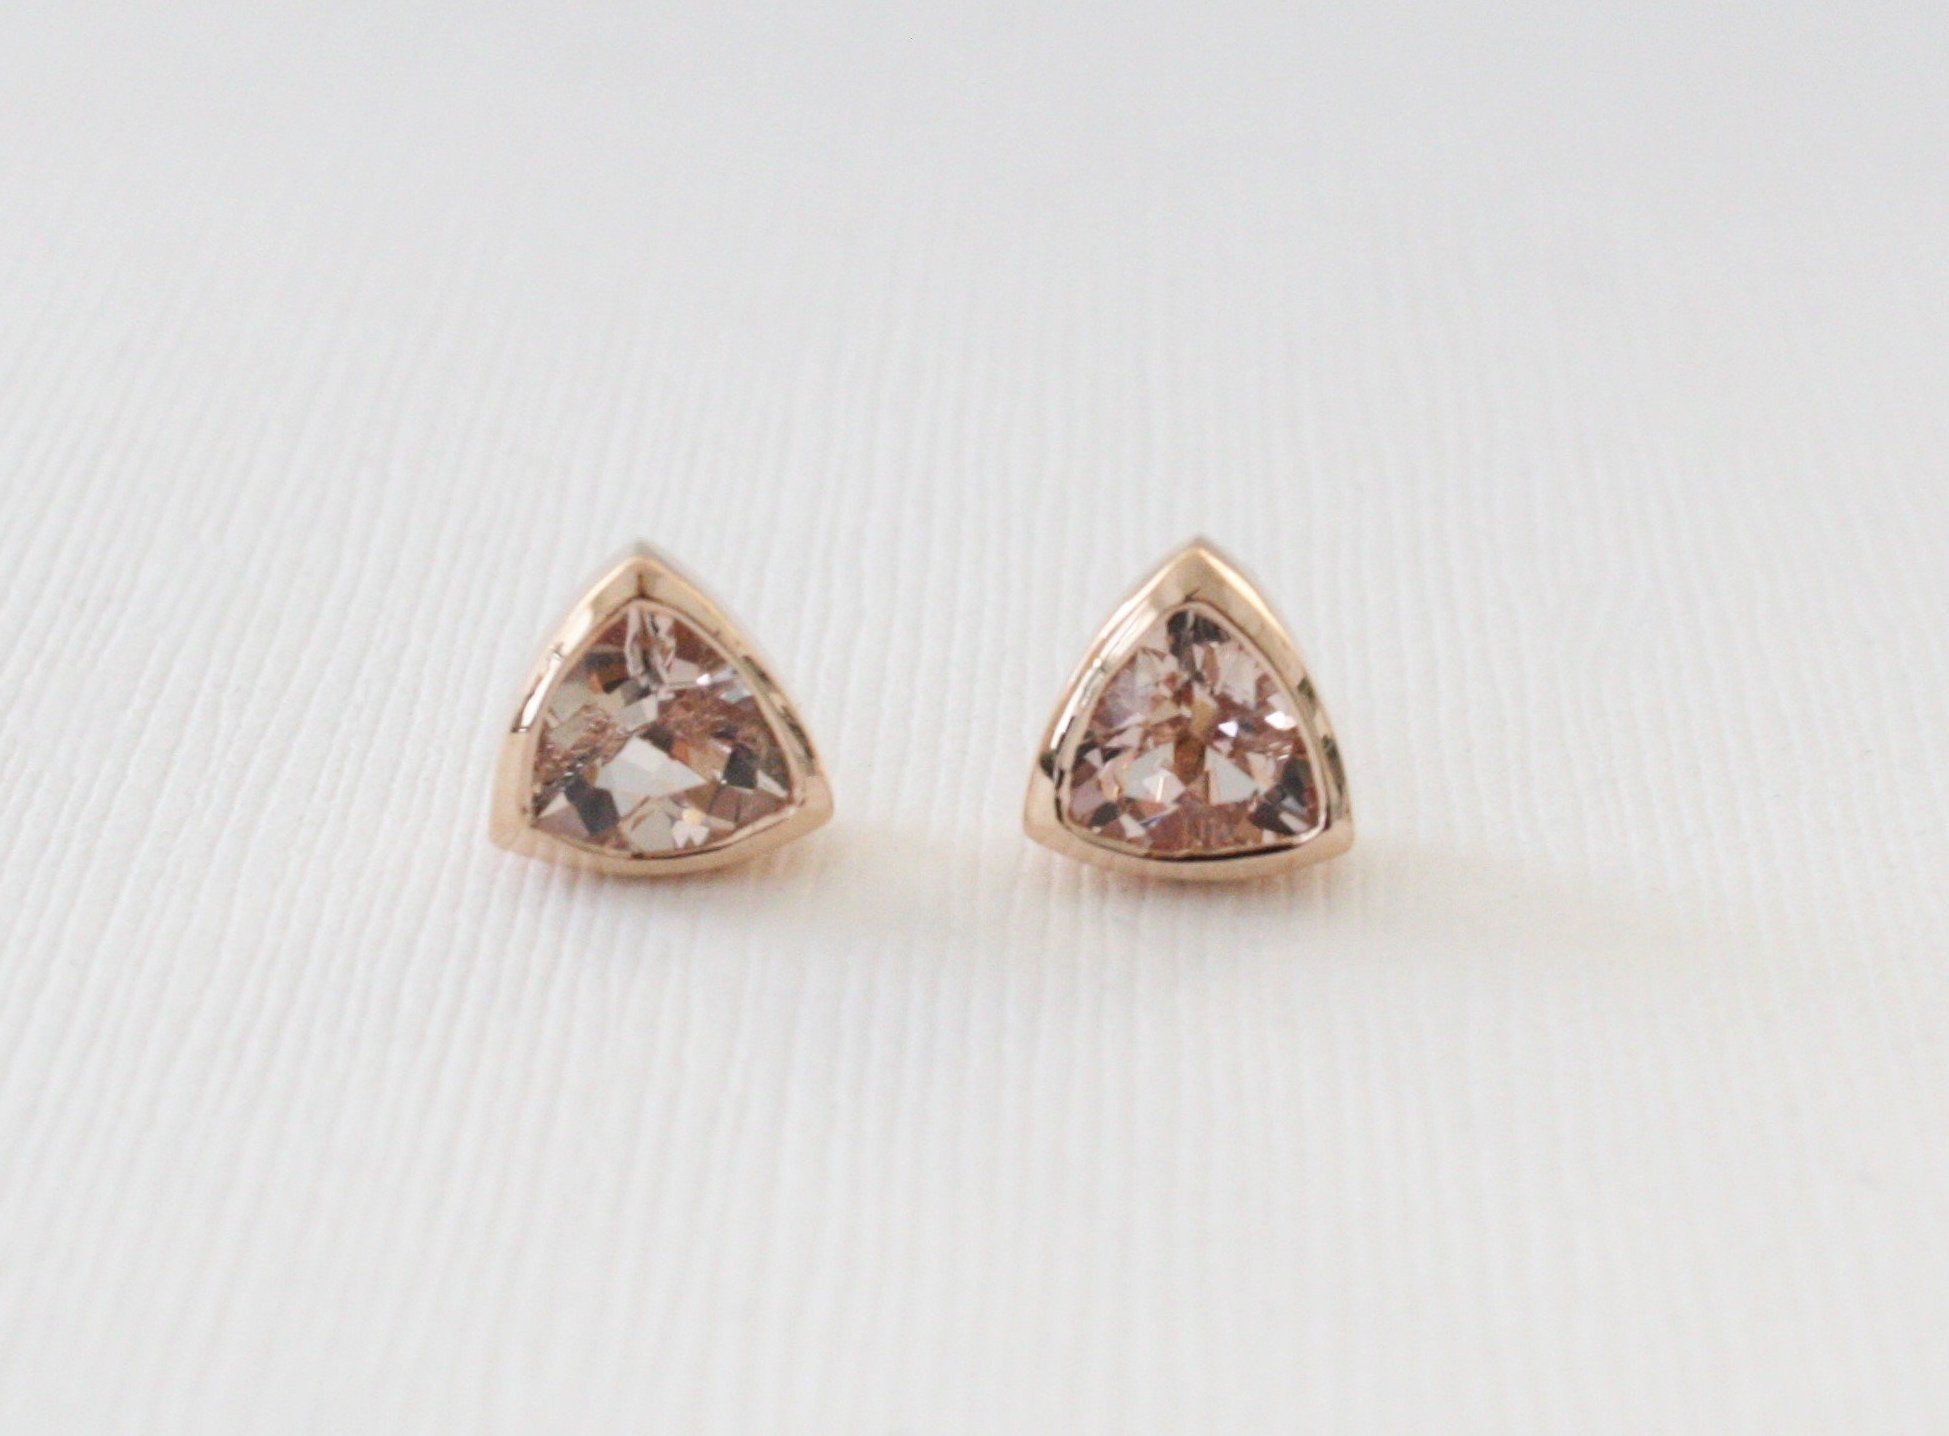 gold stud aaa prodetail carat pink peachy in earring quality rose morganite